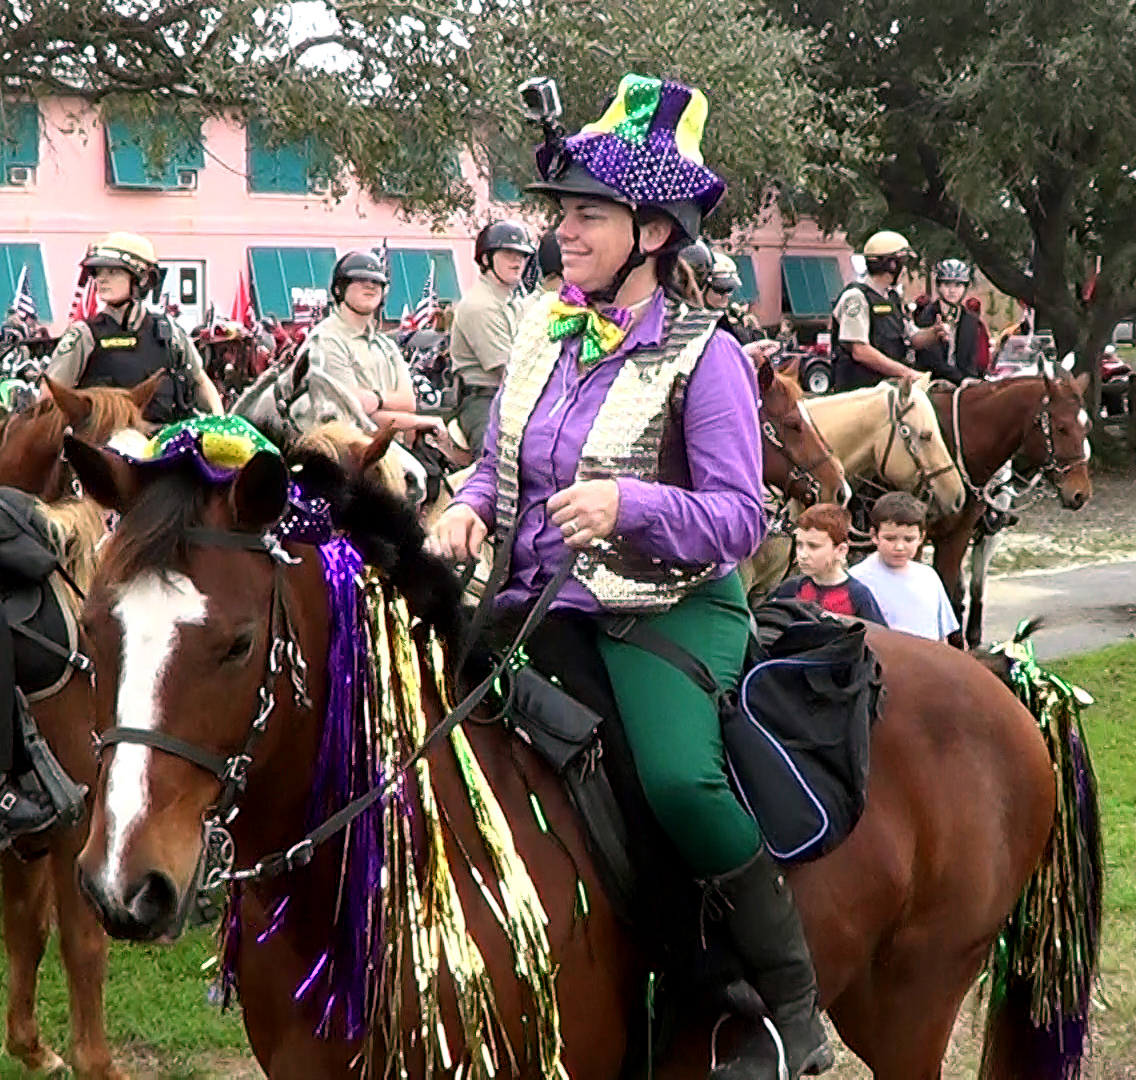 Festively dressed horse and rider